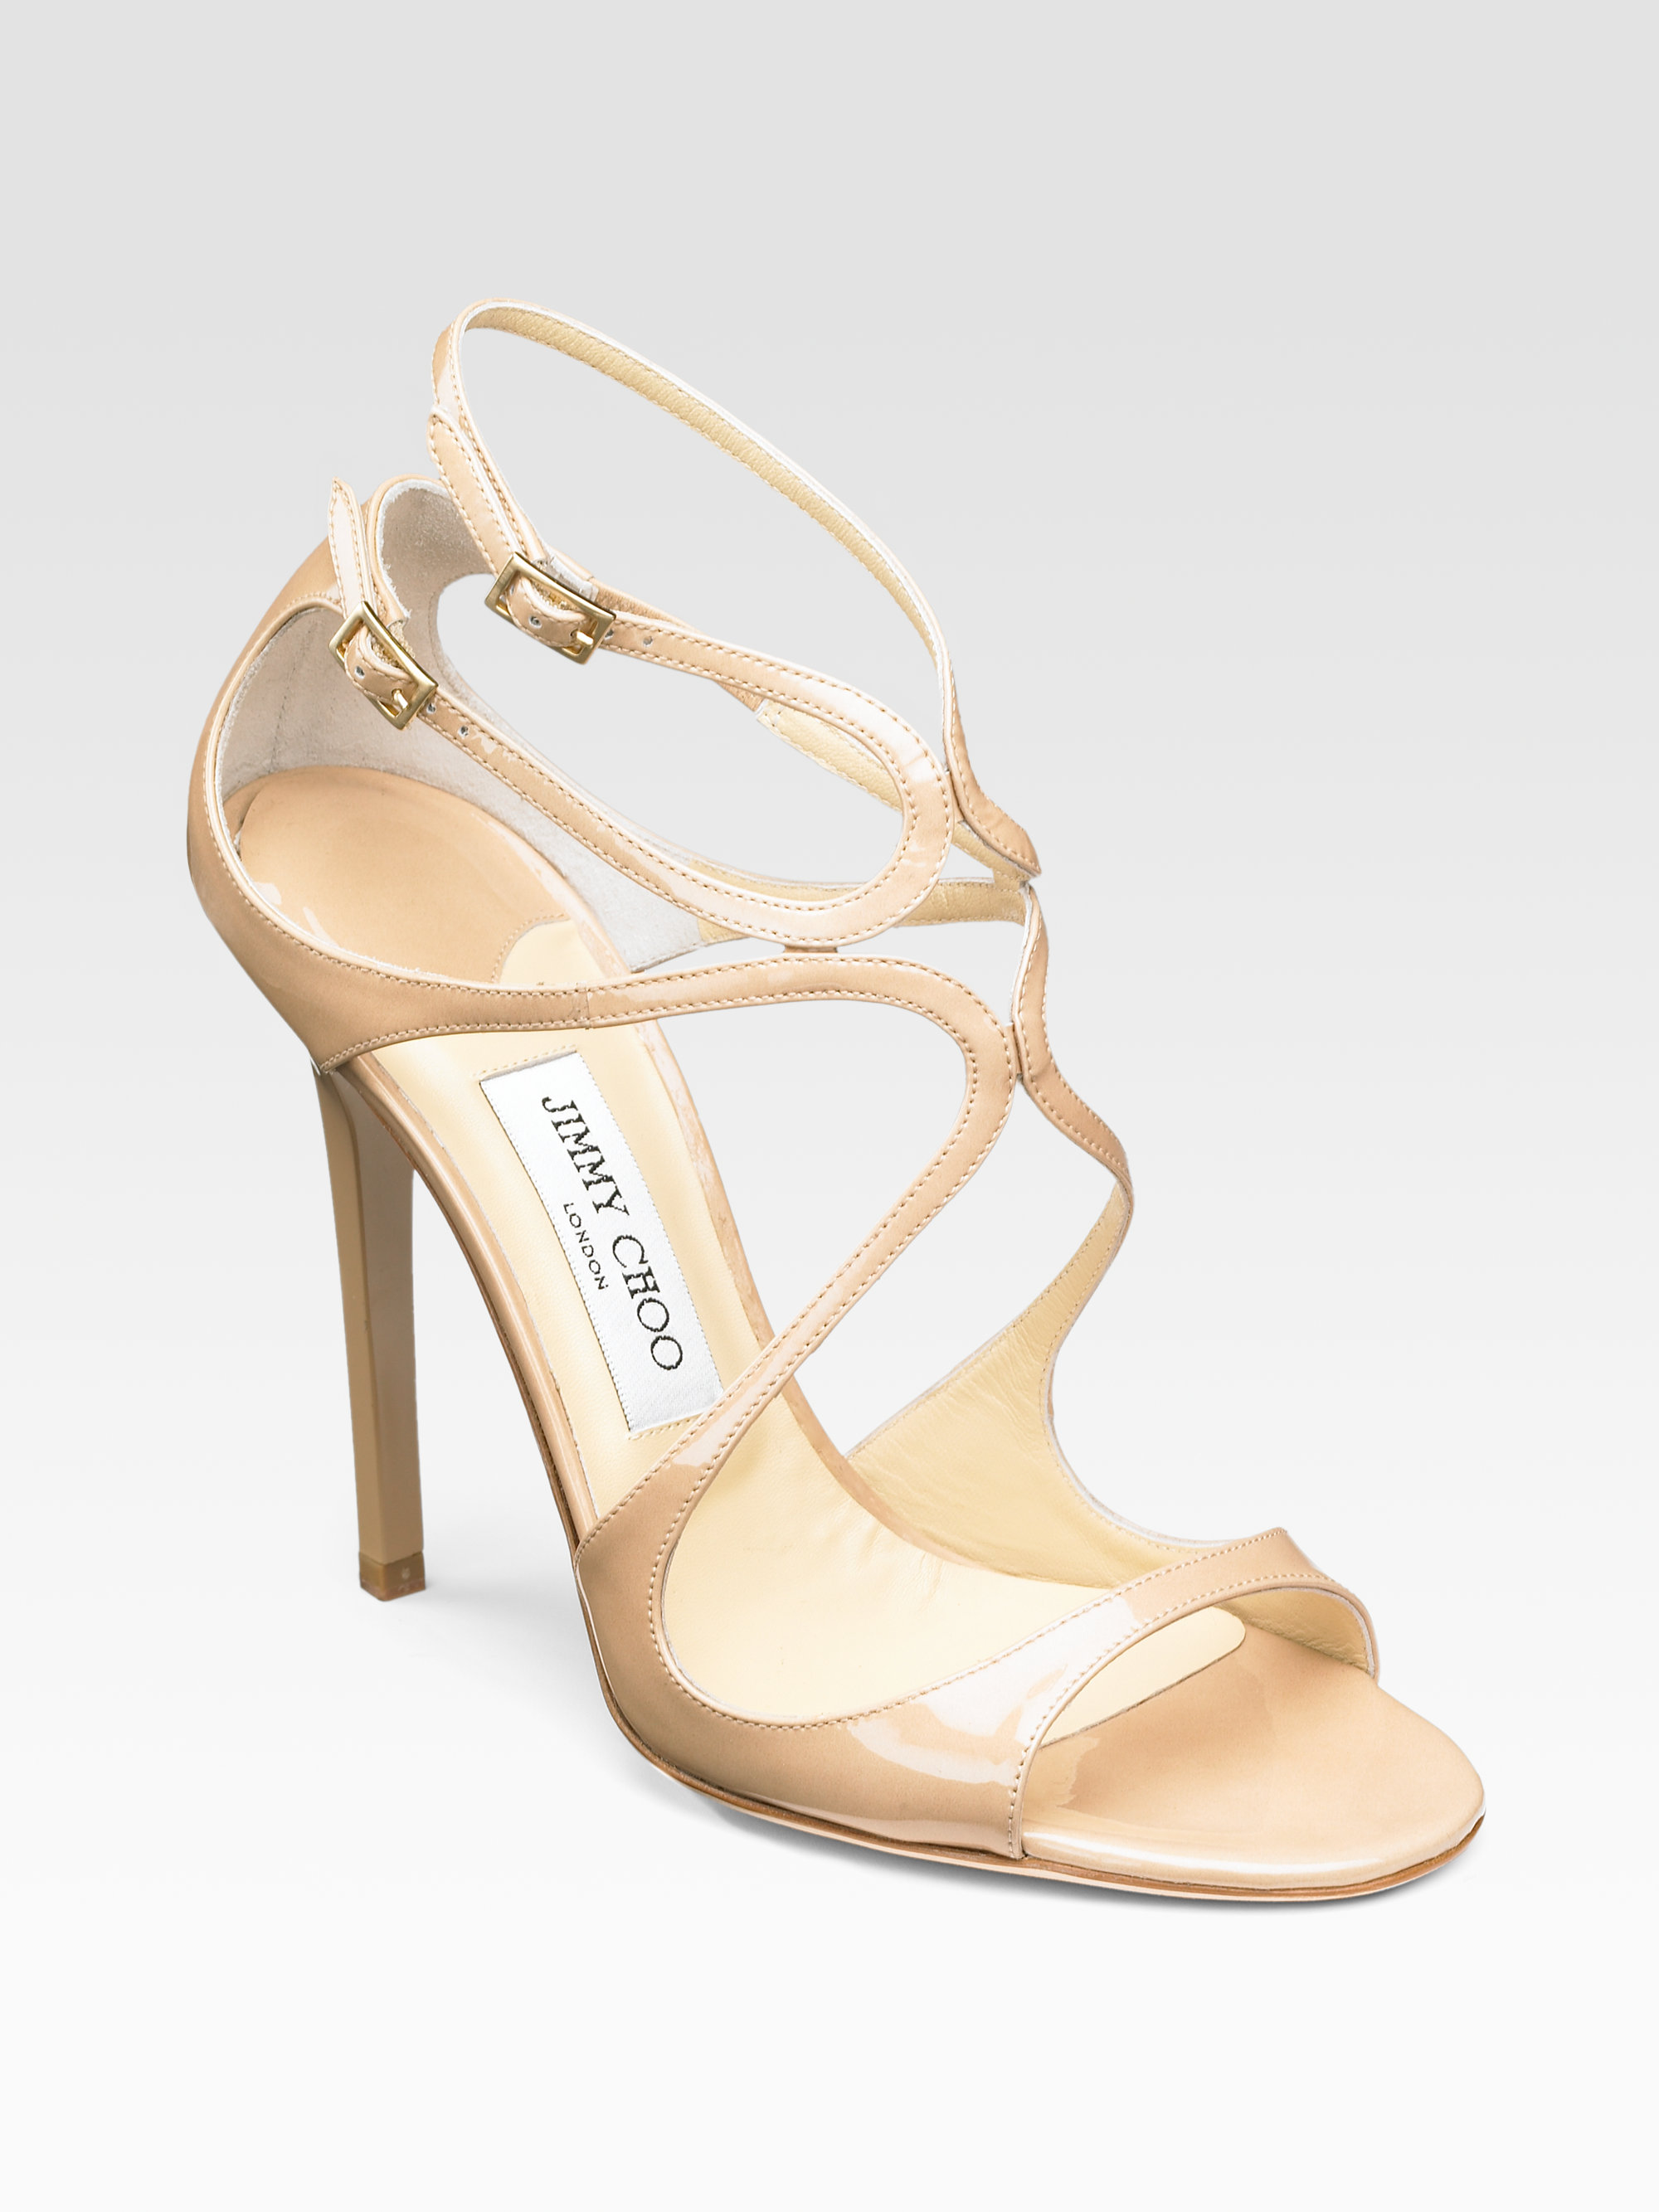 ec2e6f6168bf Lyst - Jimmy Choo Lance Strappy Patent Leather Sandals in Natural